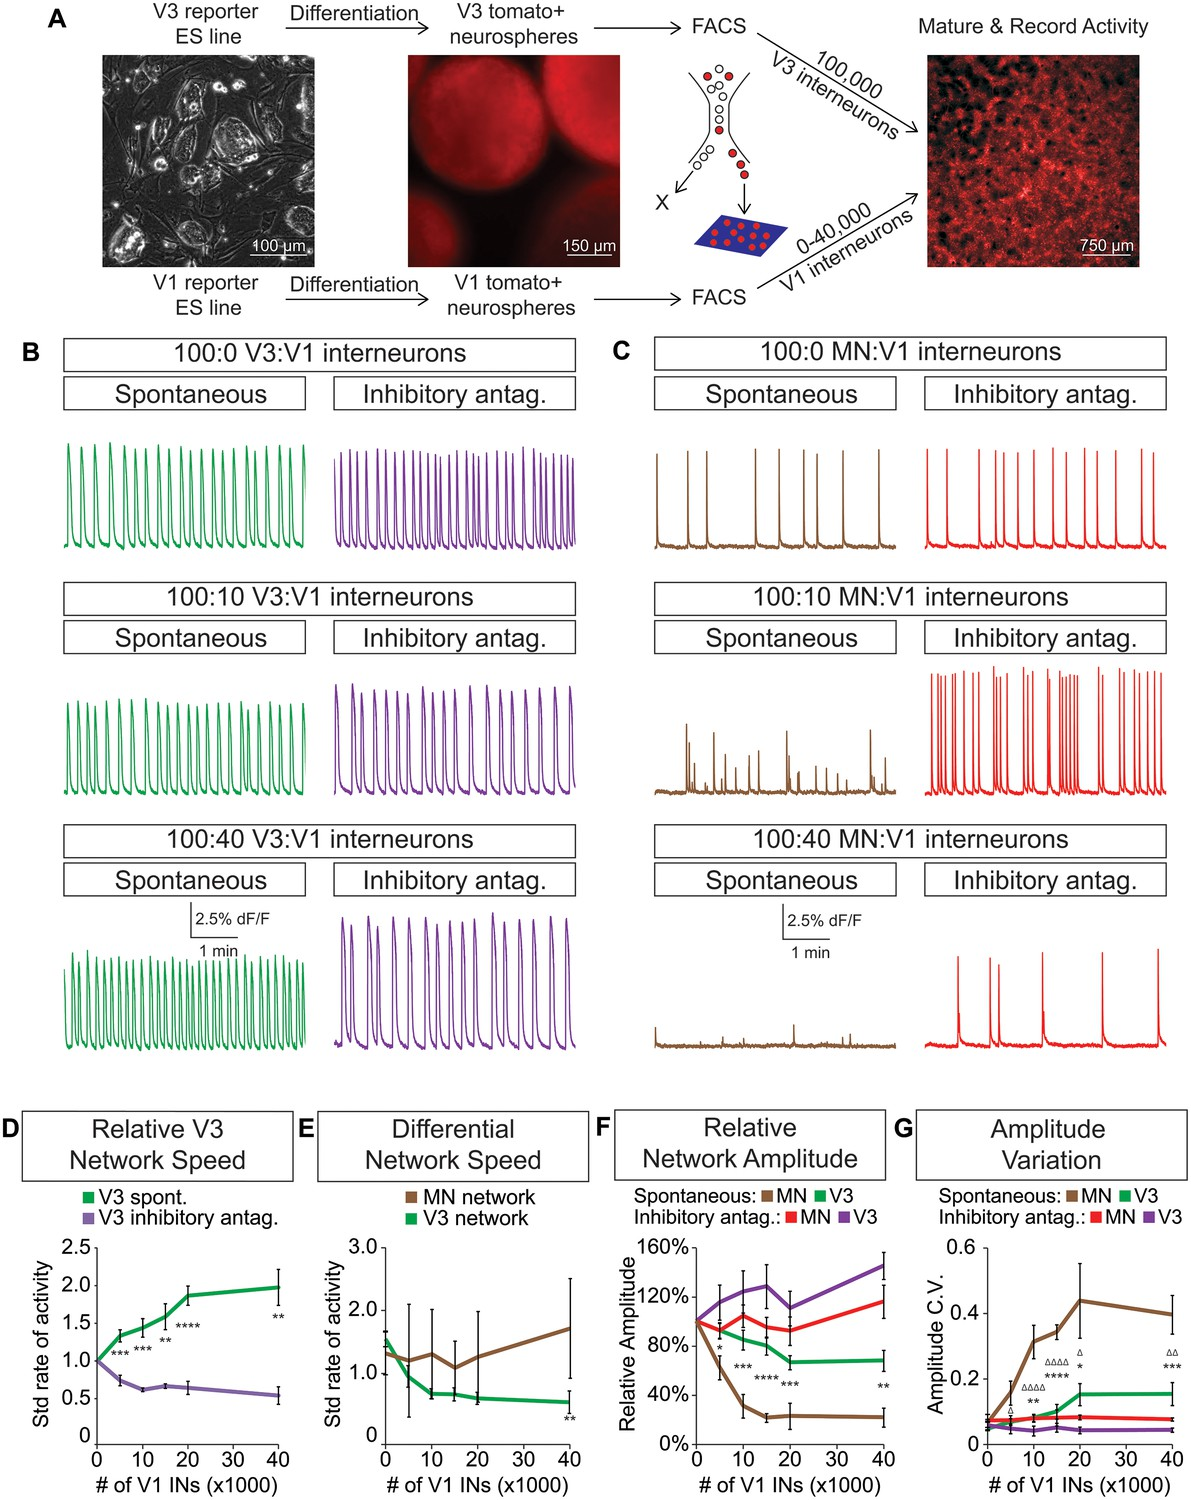 Speed And Segmentation Control Mechanisms Characterized In Rhythmically Active Circuits Created